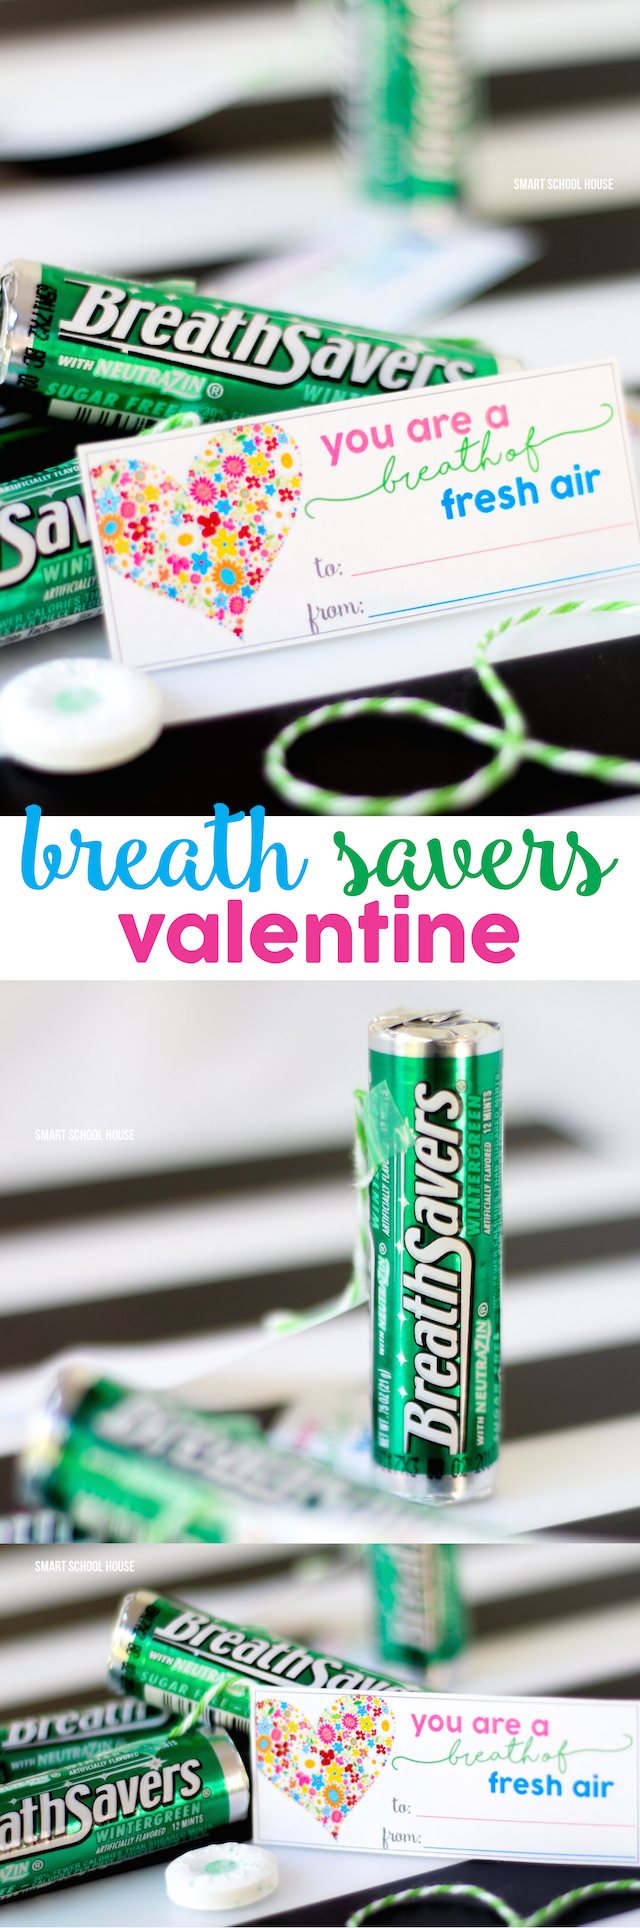 Breath Savers Valentine - You are a BREATH of fresh air! DIY Valentine idea.